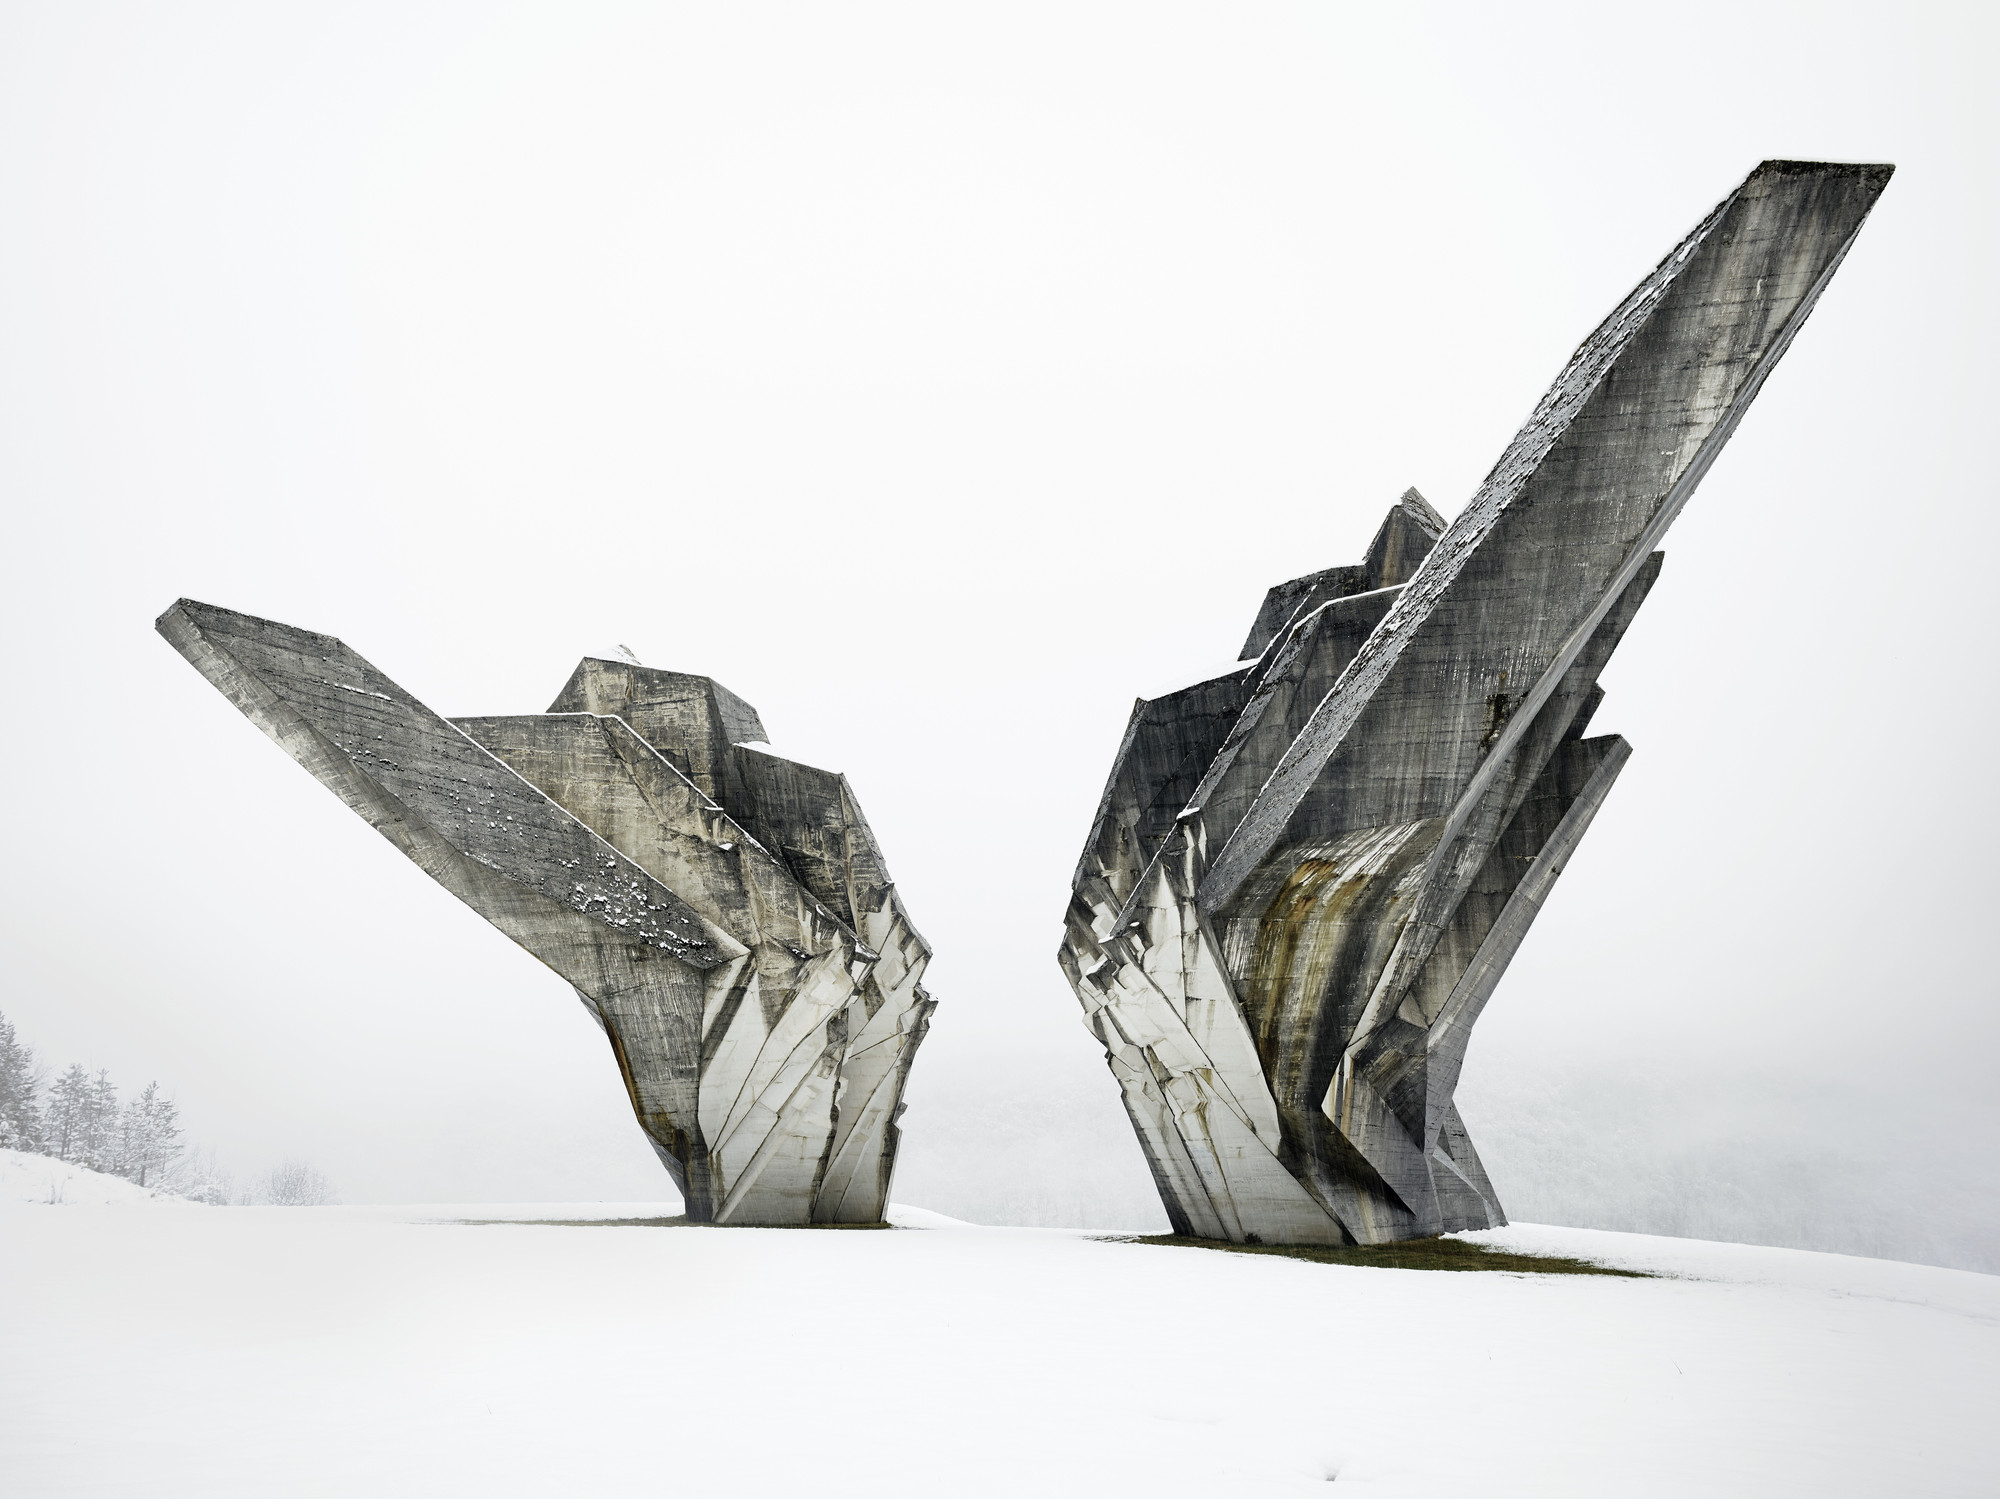 Valentin Jeck, Miodrag Živković. Monument to the Battle of the Sutjeska, Tjentište, Bosnia and Herzegovina (View of the monument, 2016). 2017